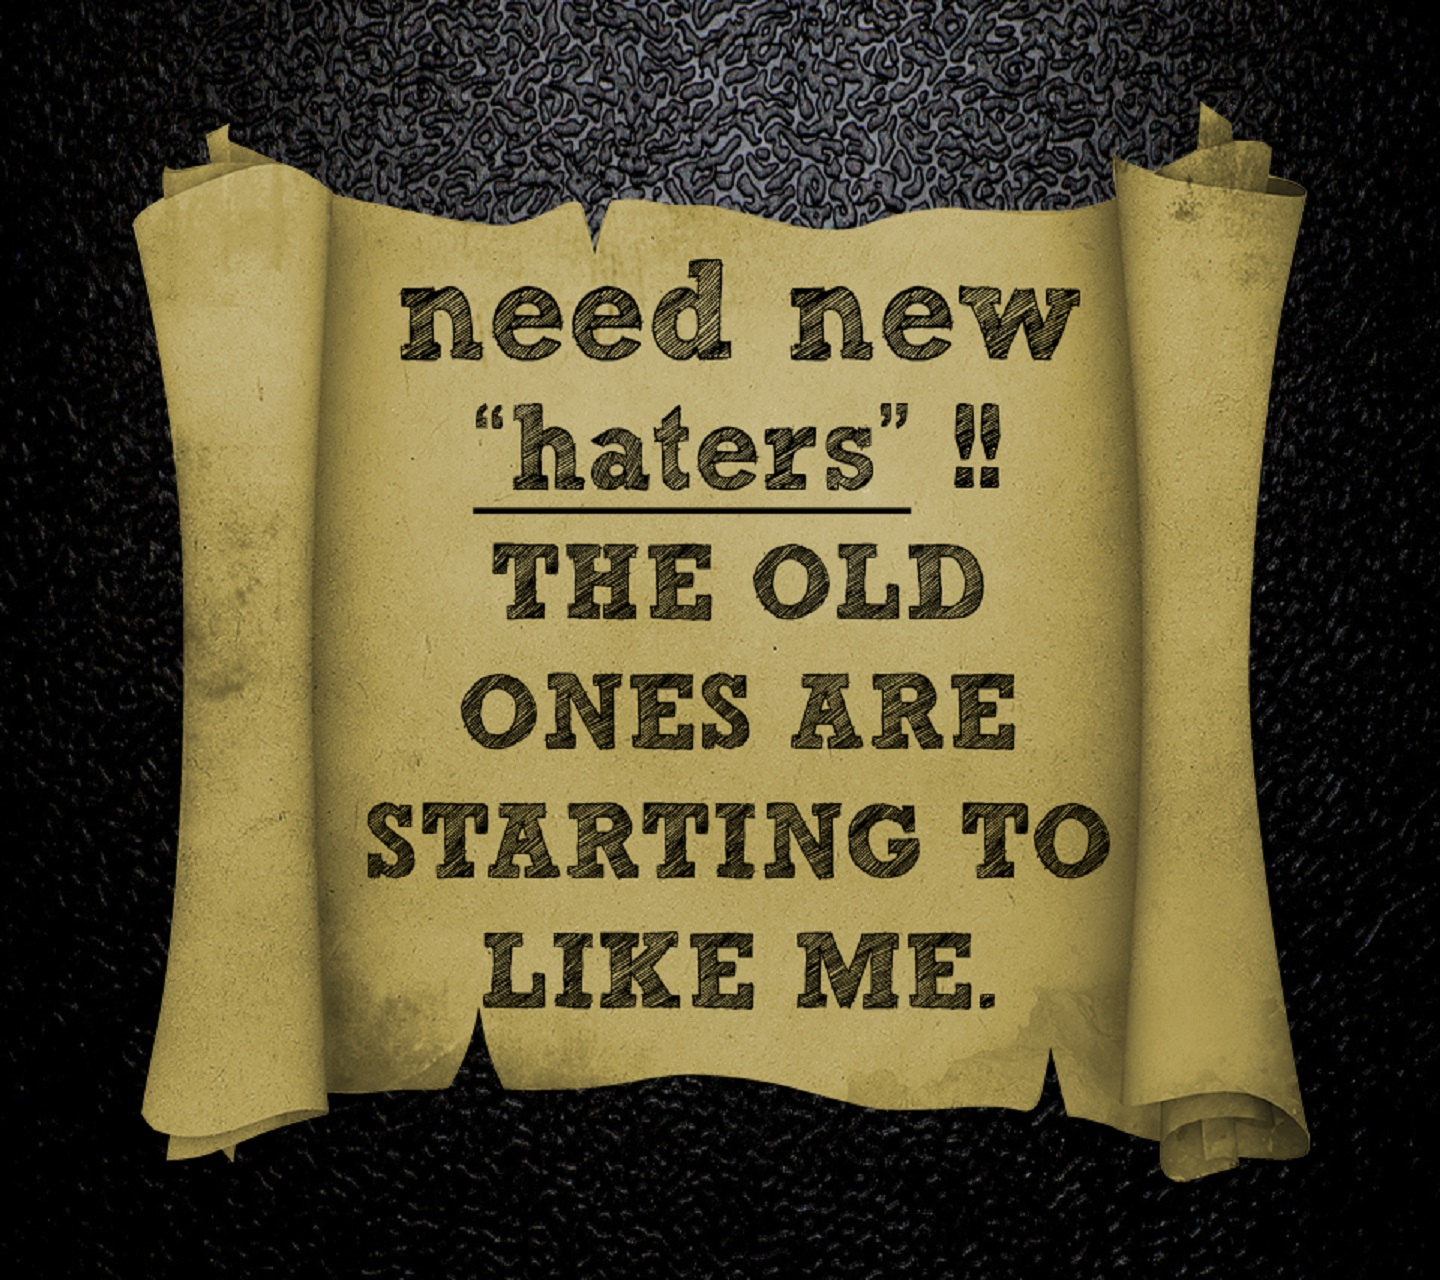 Haters Quotes Wallpaper. QuotesGram